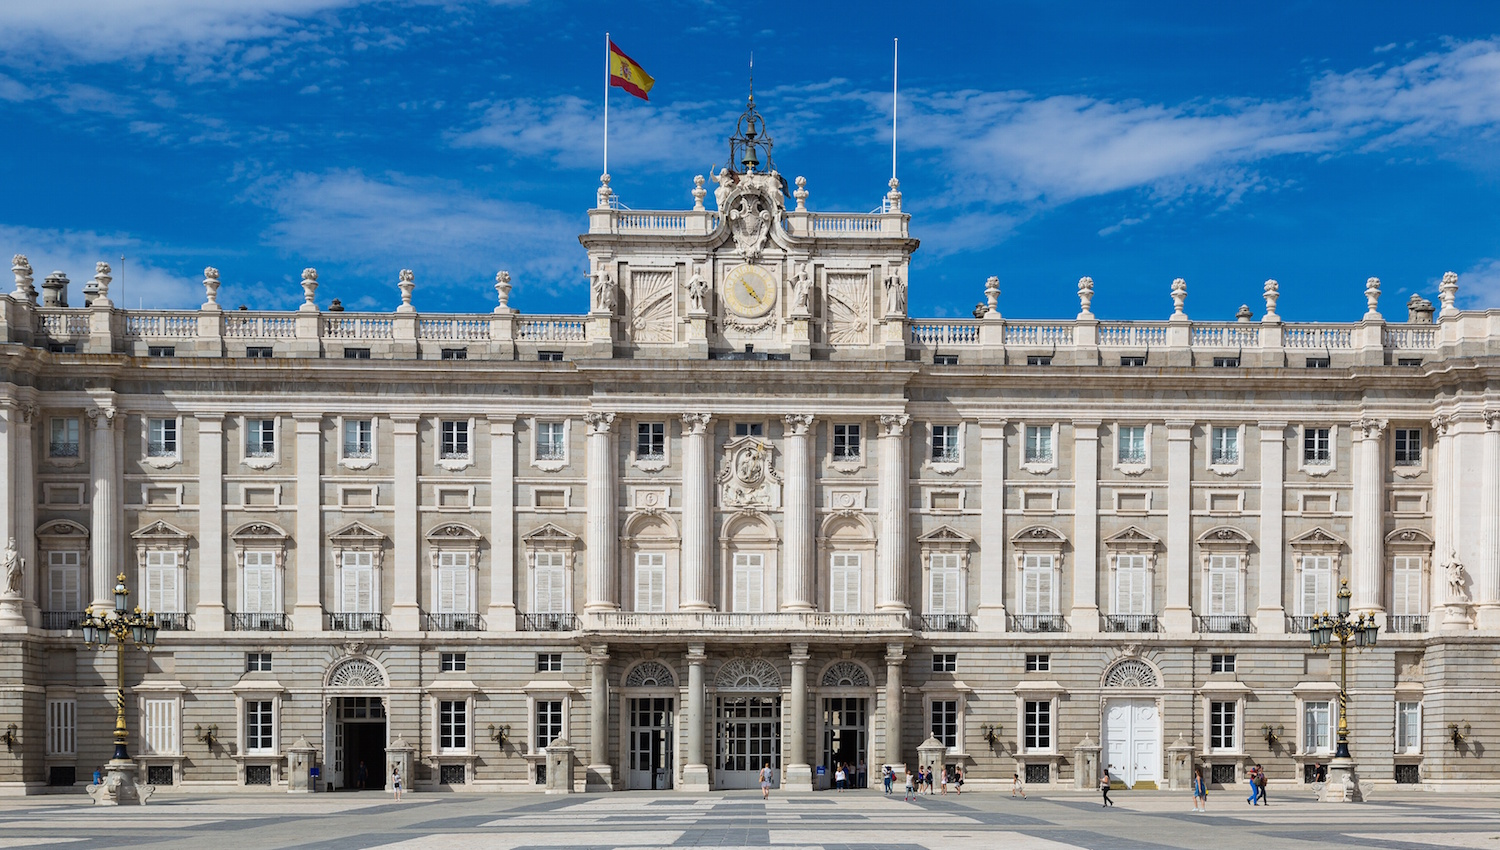 Royal Palace of Madrid facts: The beginning